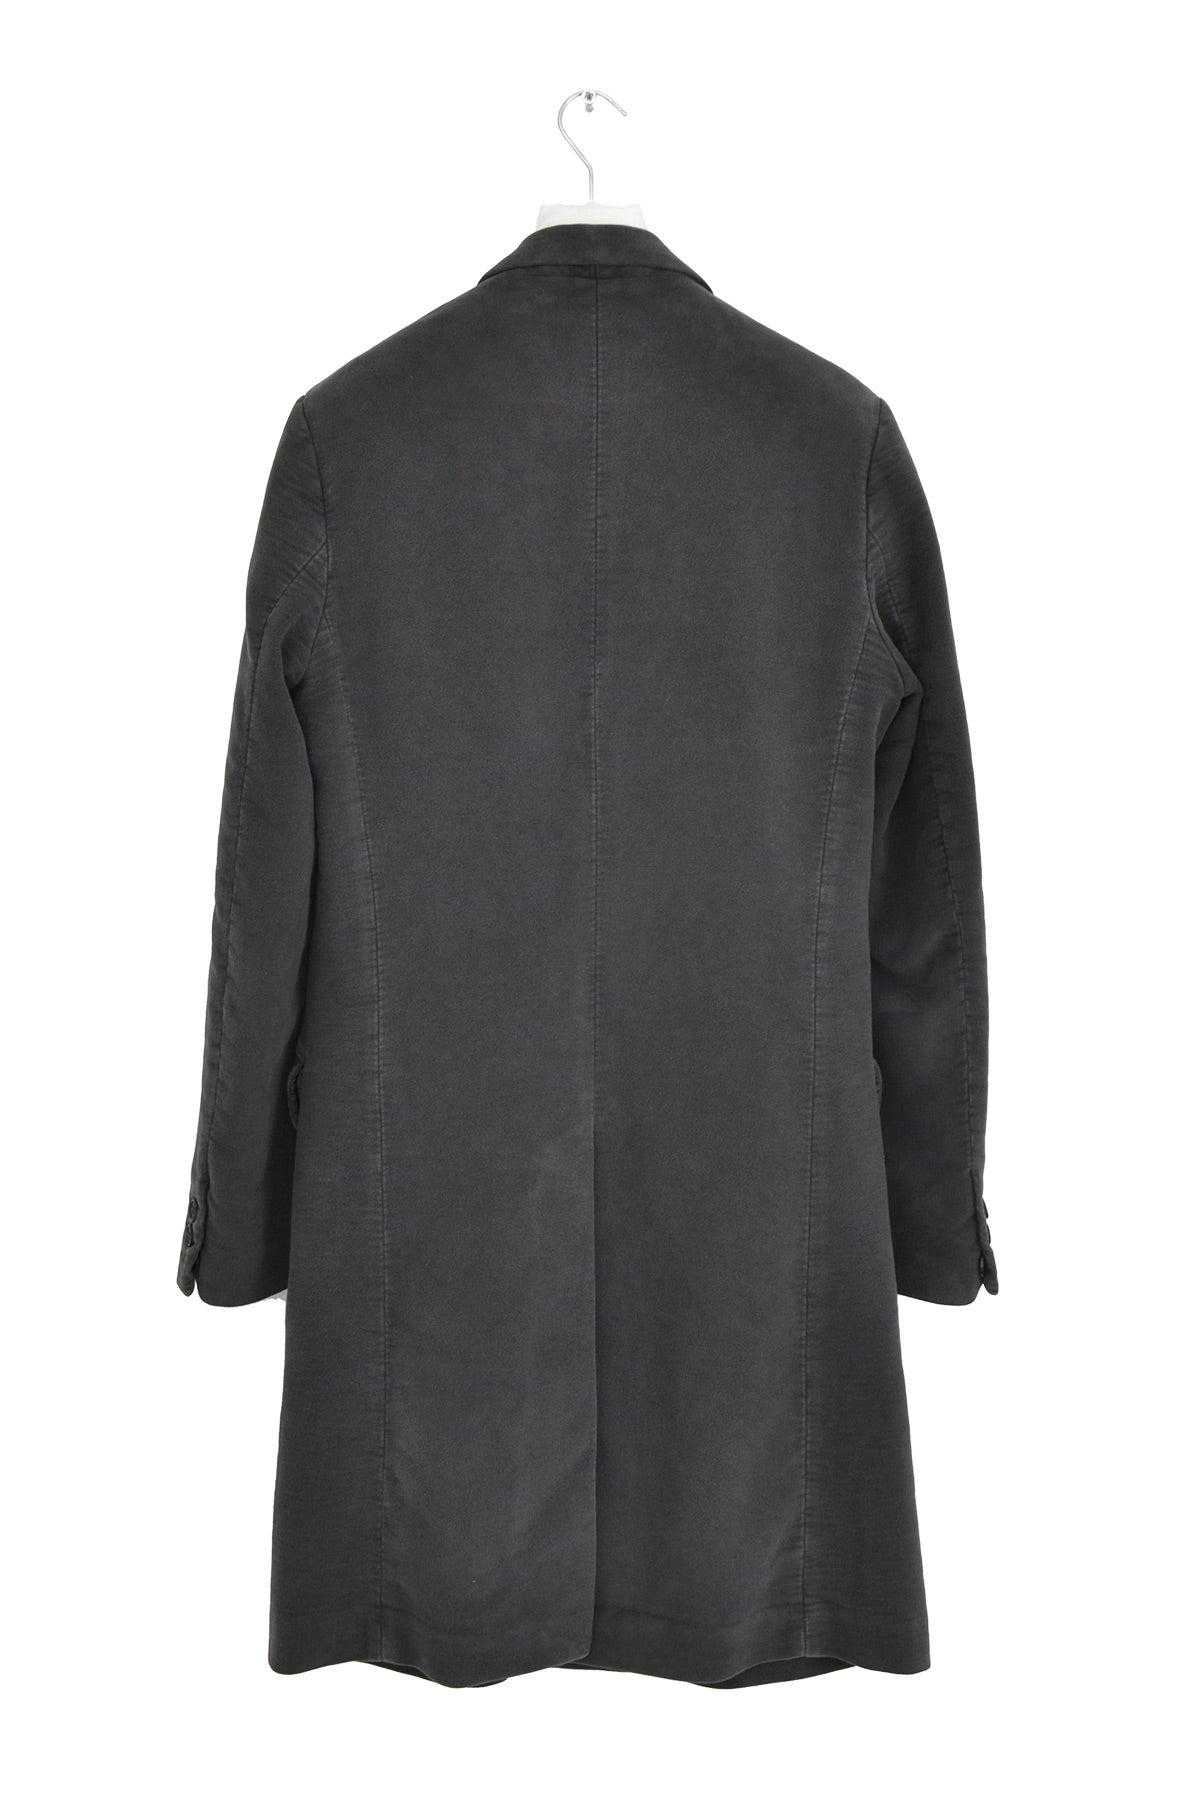 2005 A/W CHESTERFIELD COAT IN GRAY MOLESKIN COTTON